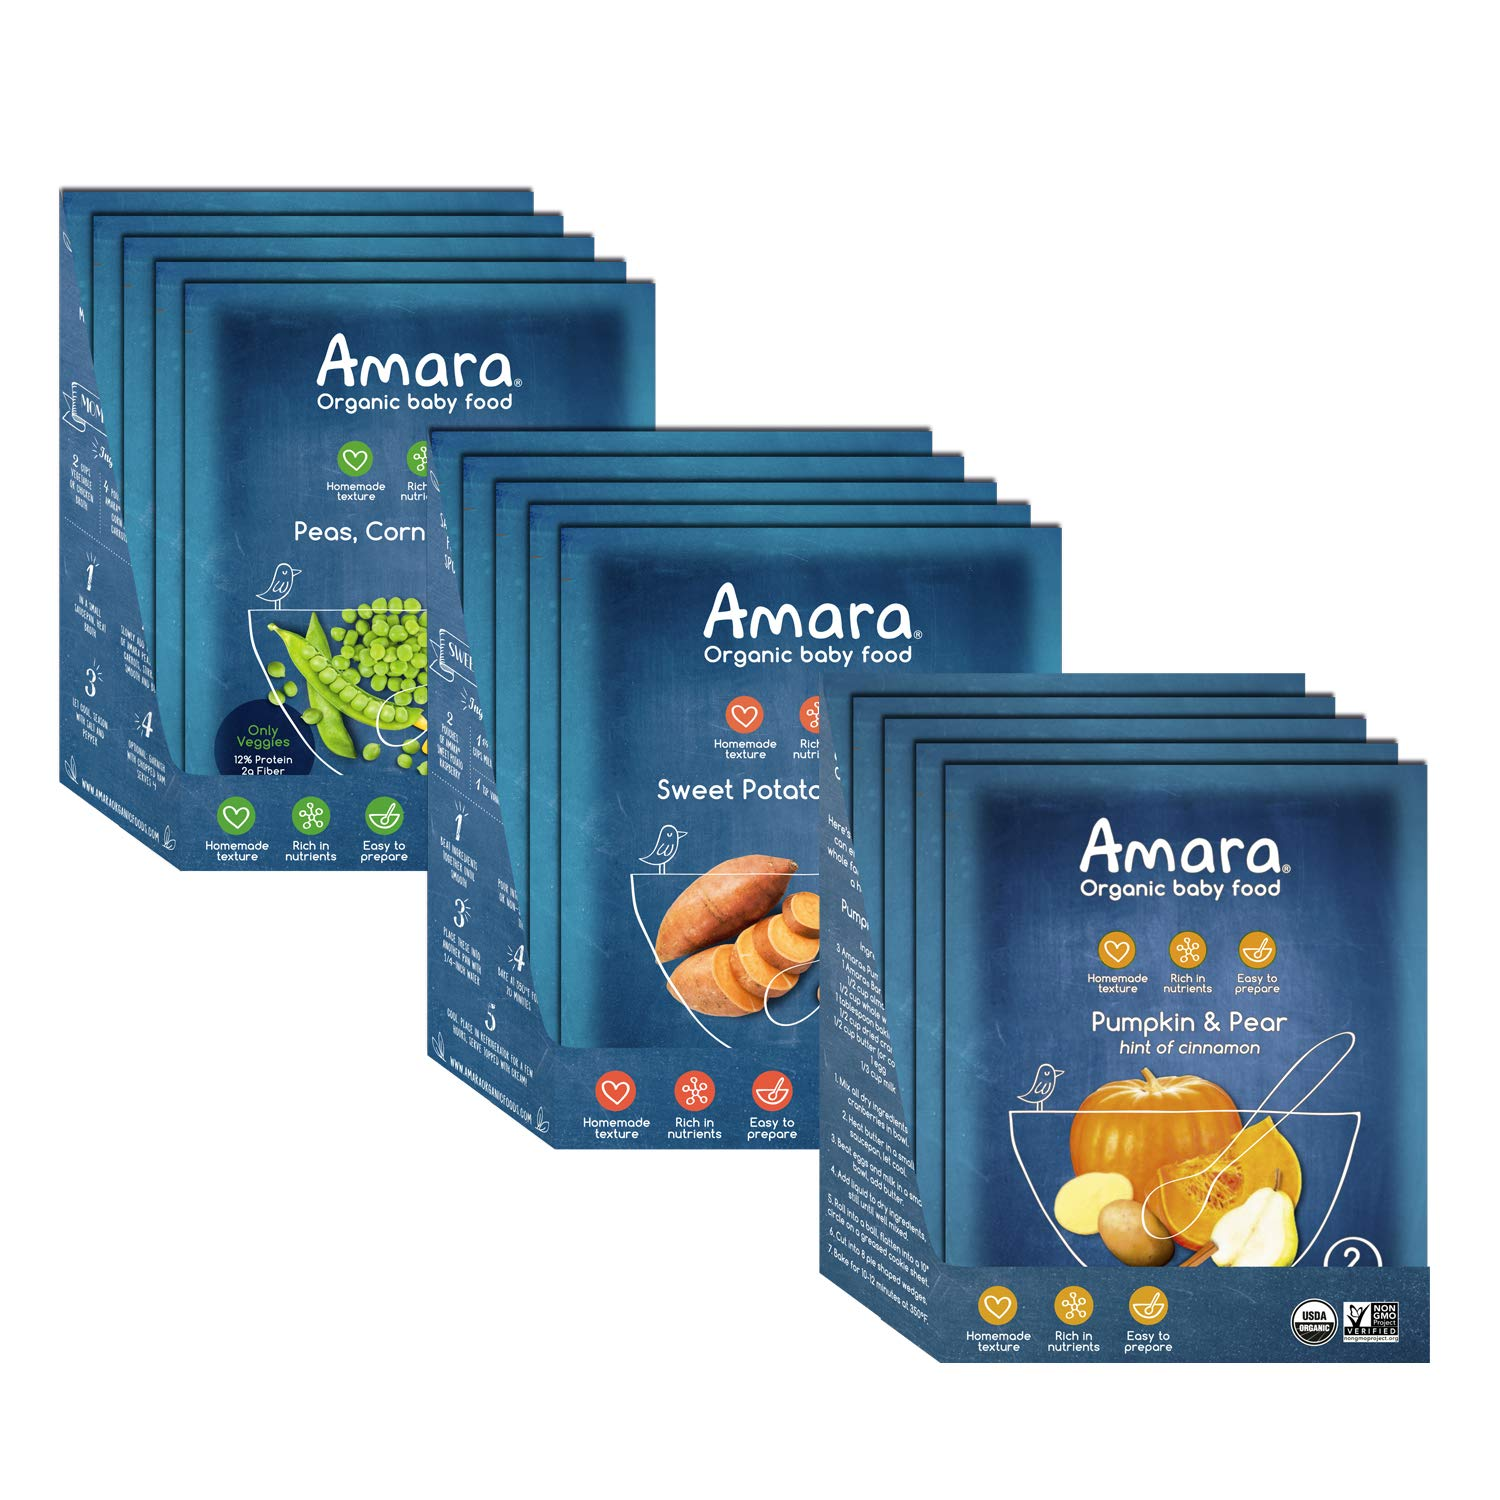 Amara Baby Food, Veggie Variety Pack. Peas, Corn & Carrots, Sweet Potato Raspberry, and Pumpkin Pear. 100% Organic Veggies for Infant & Toddler Meals - Stage 2 (15 pouches)